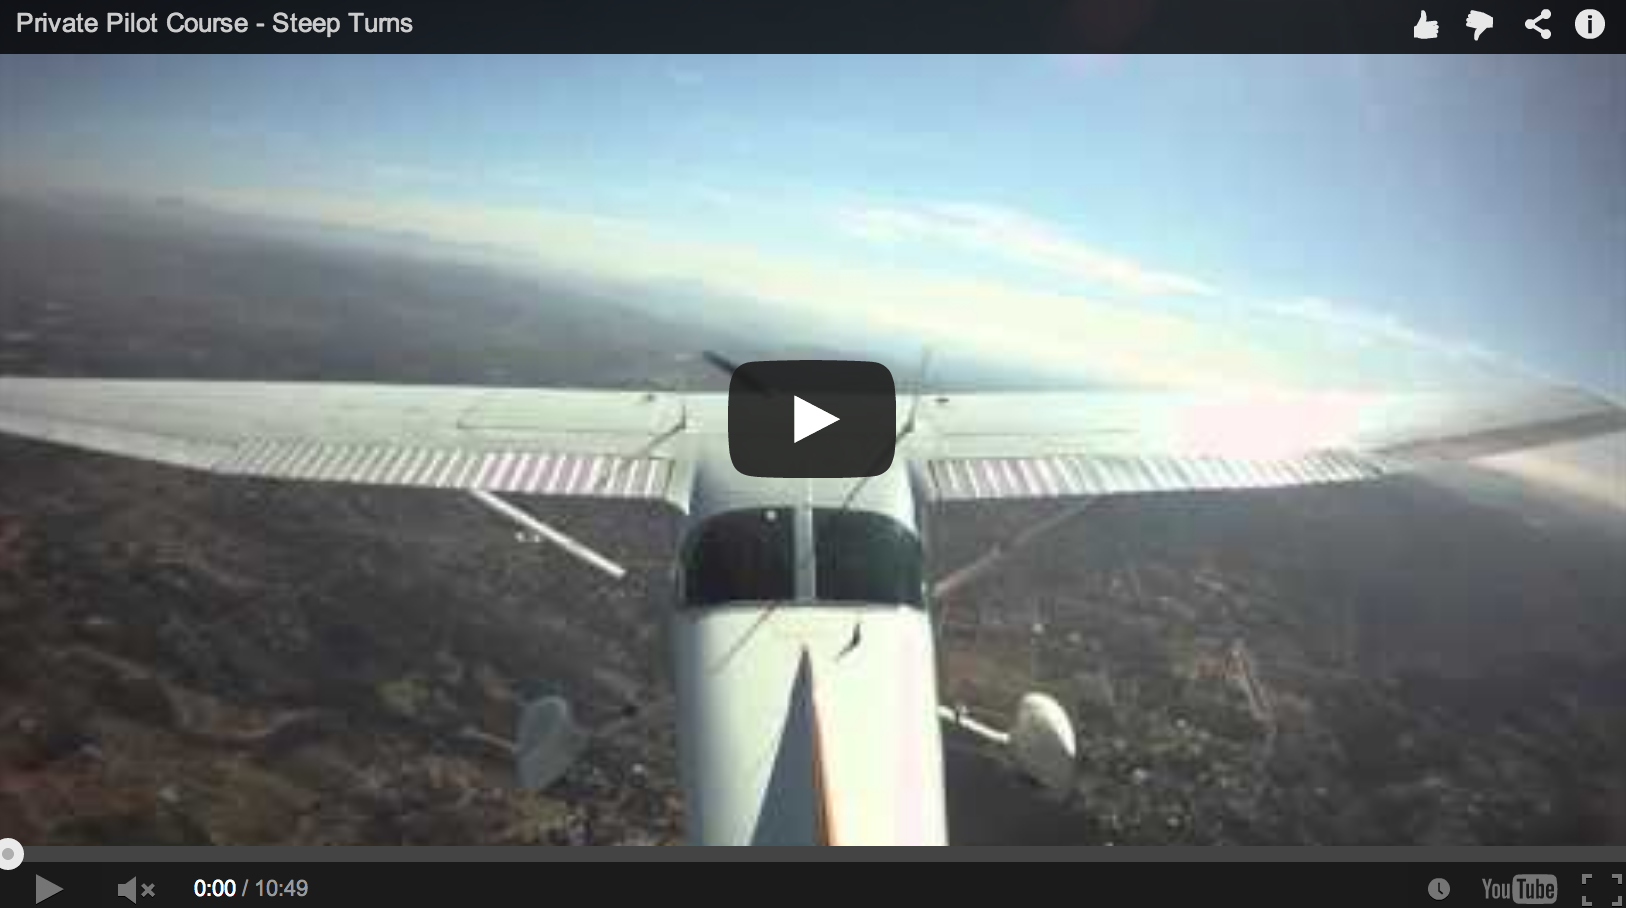 PRIVATE PILOT – STEEP TURNS